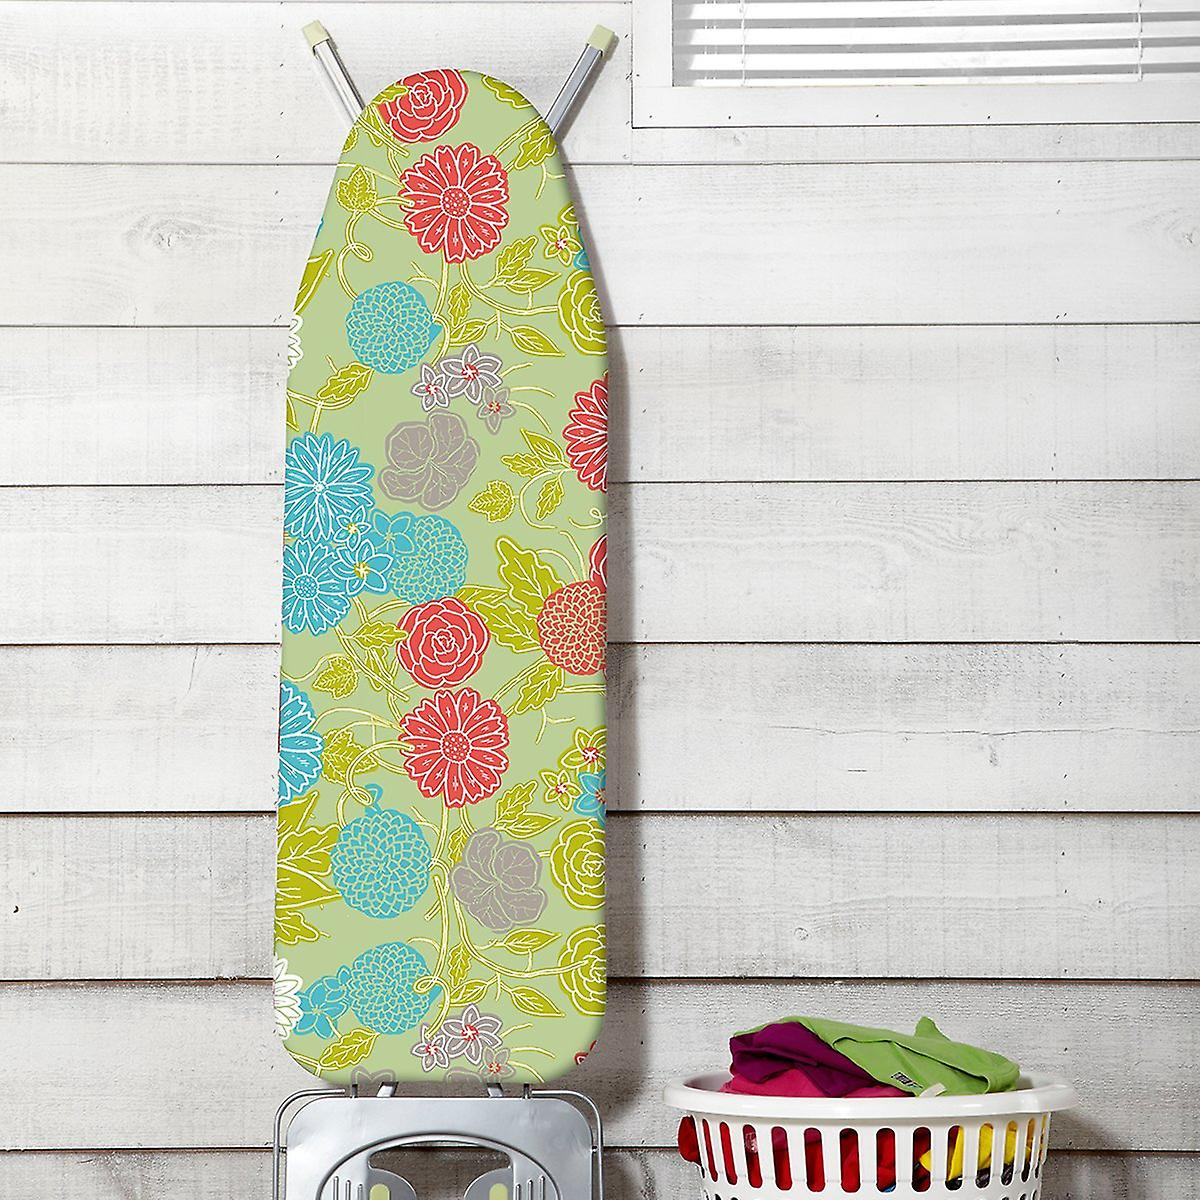 JML Fast Fit Ironing Board Cover Ultimate - Pressed Flowers